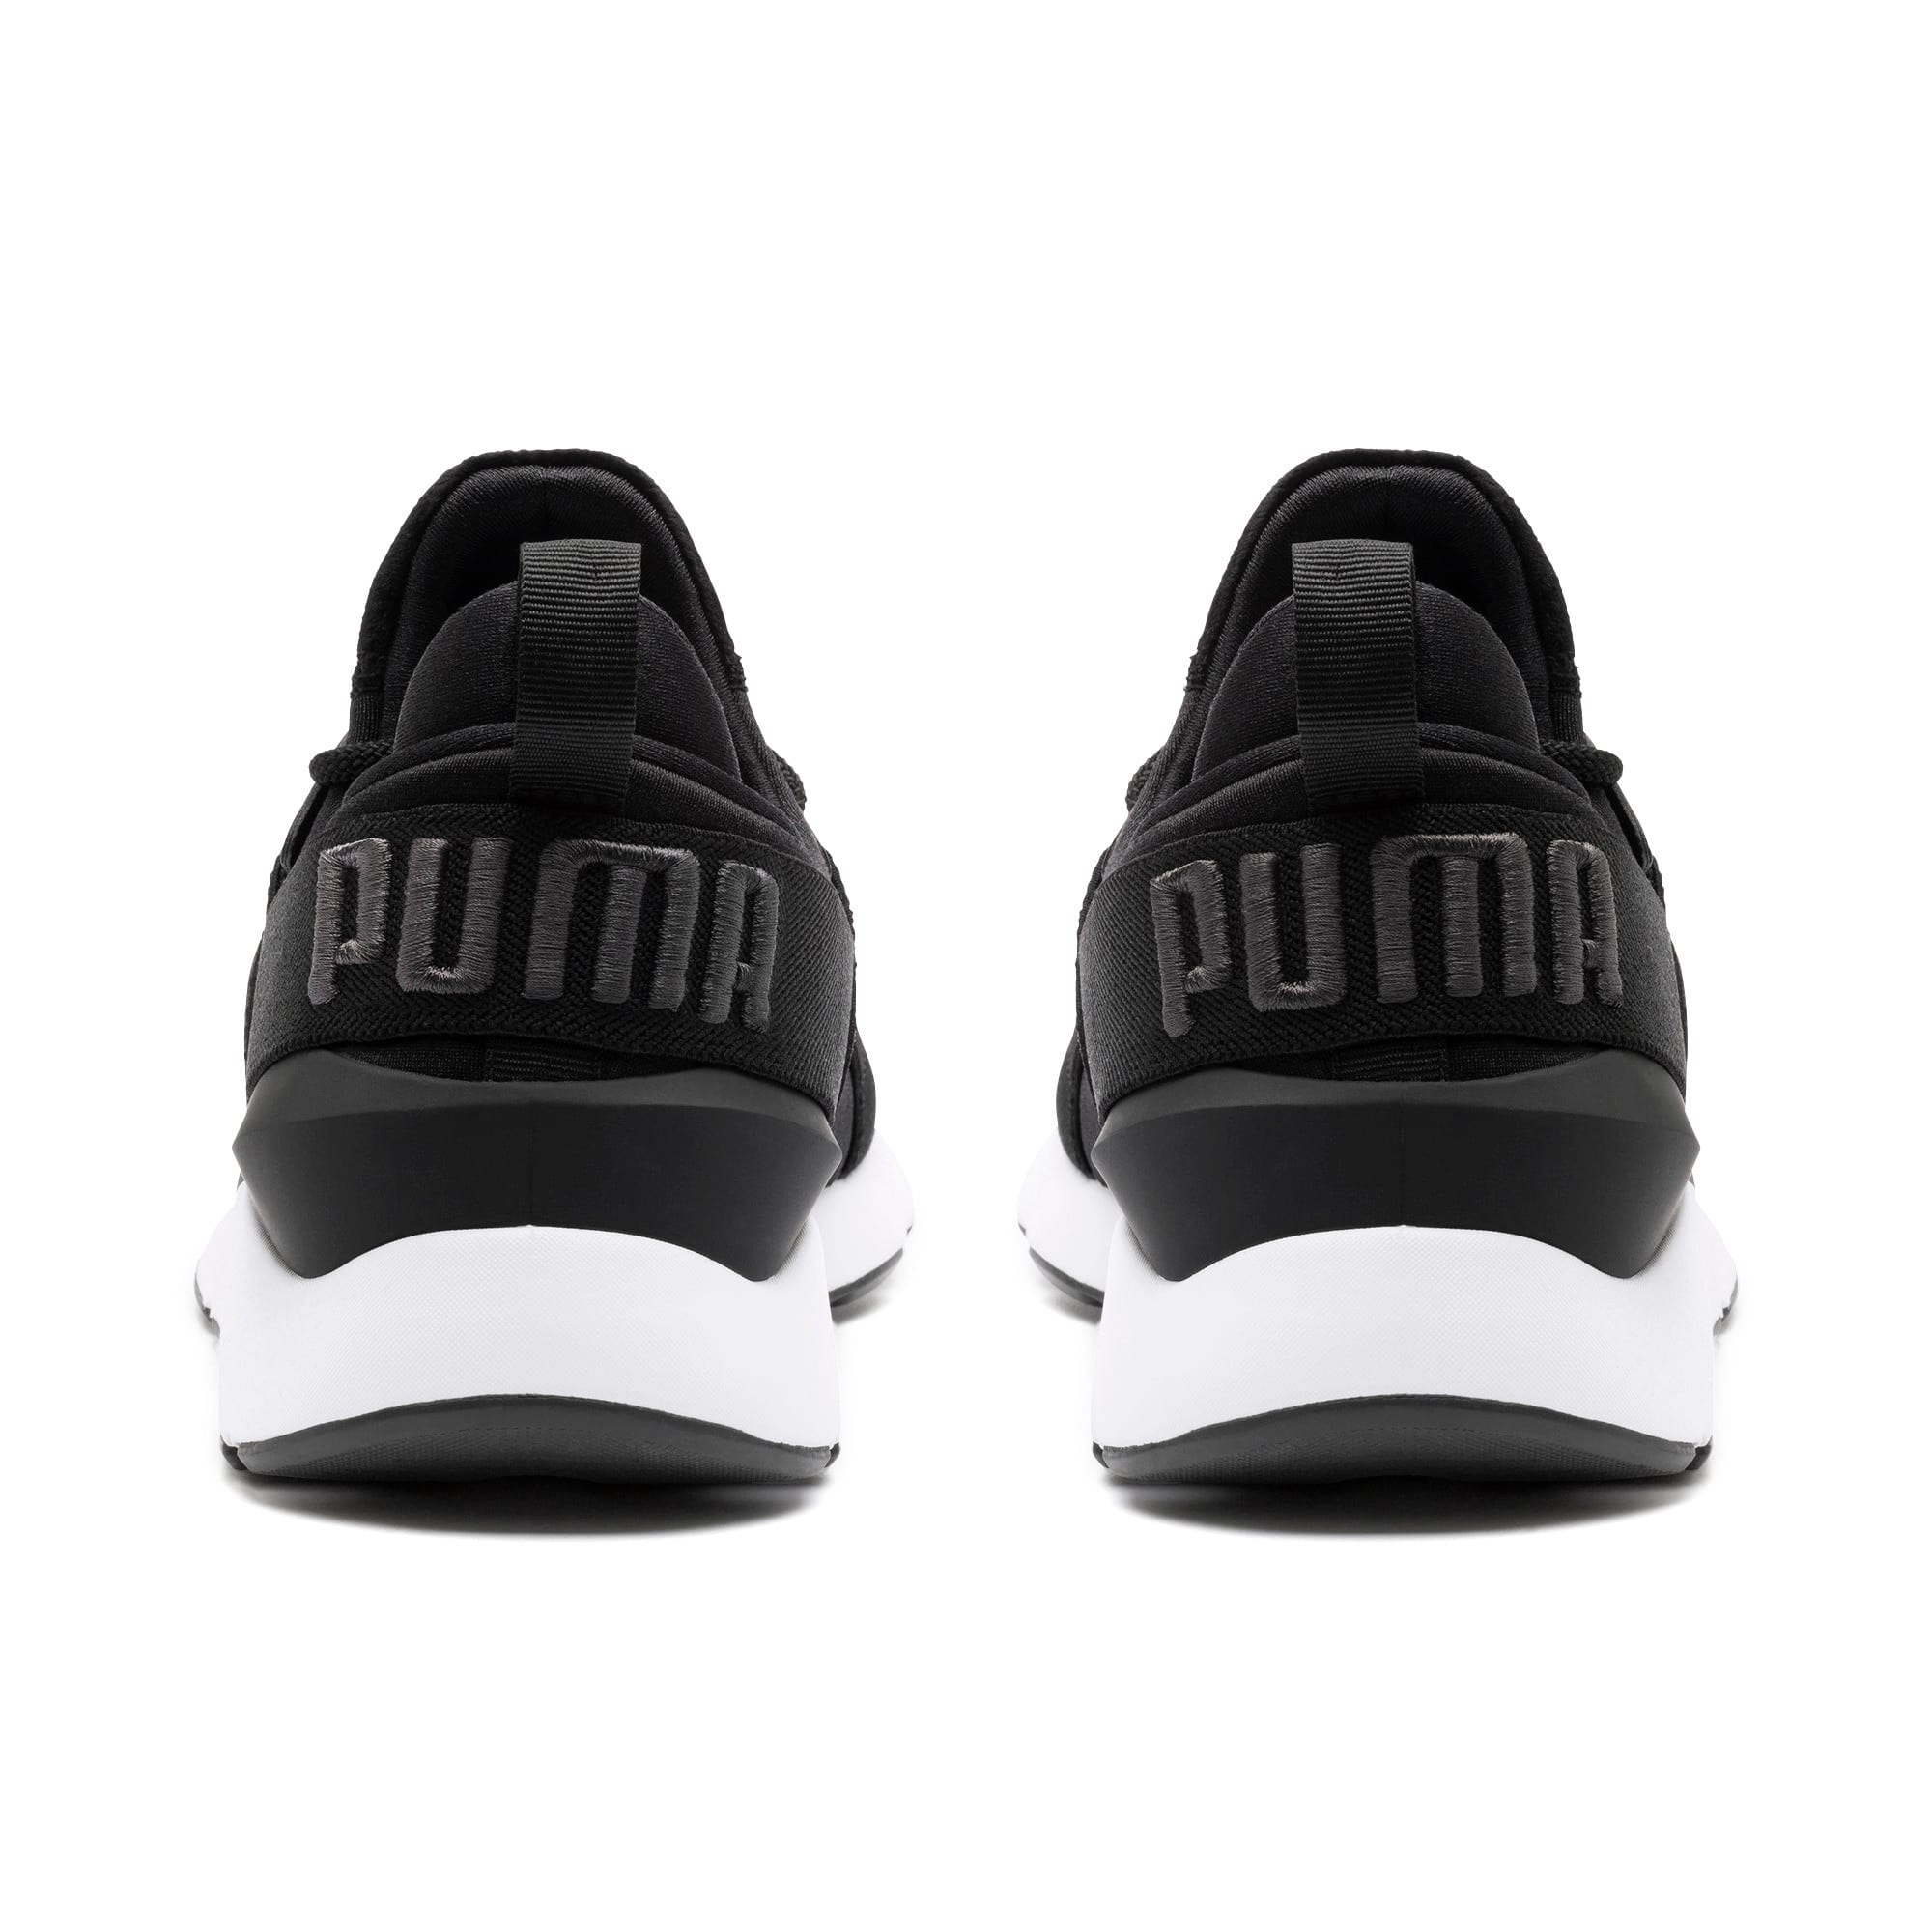 Thumbnail 4 of Muse Satin II Damen Sneaker, Puma Black-Asphalt, medium